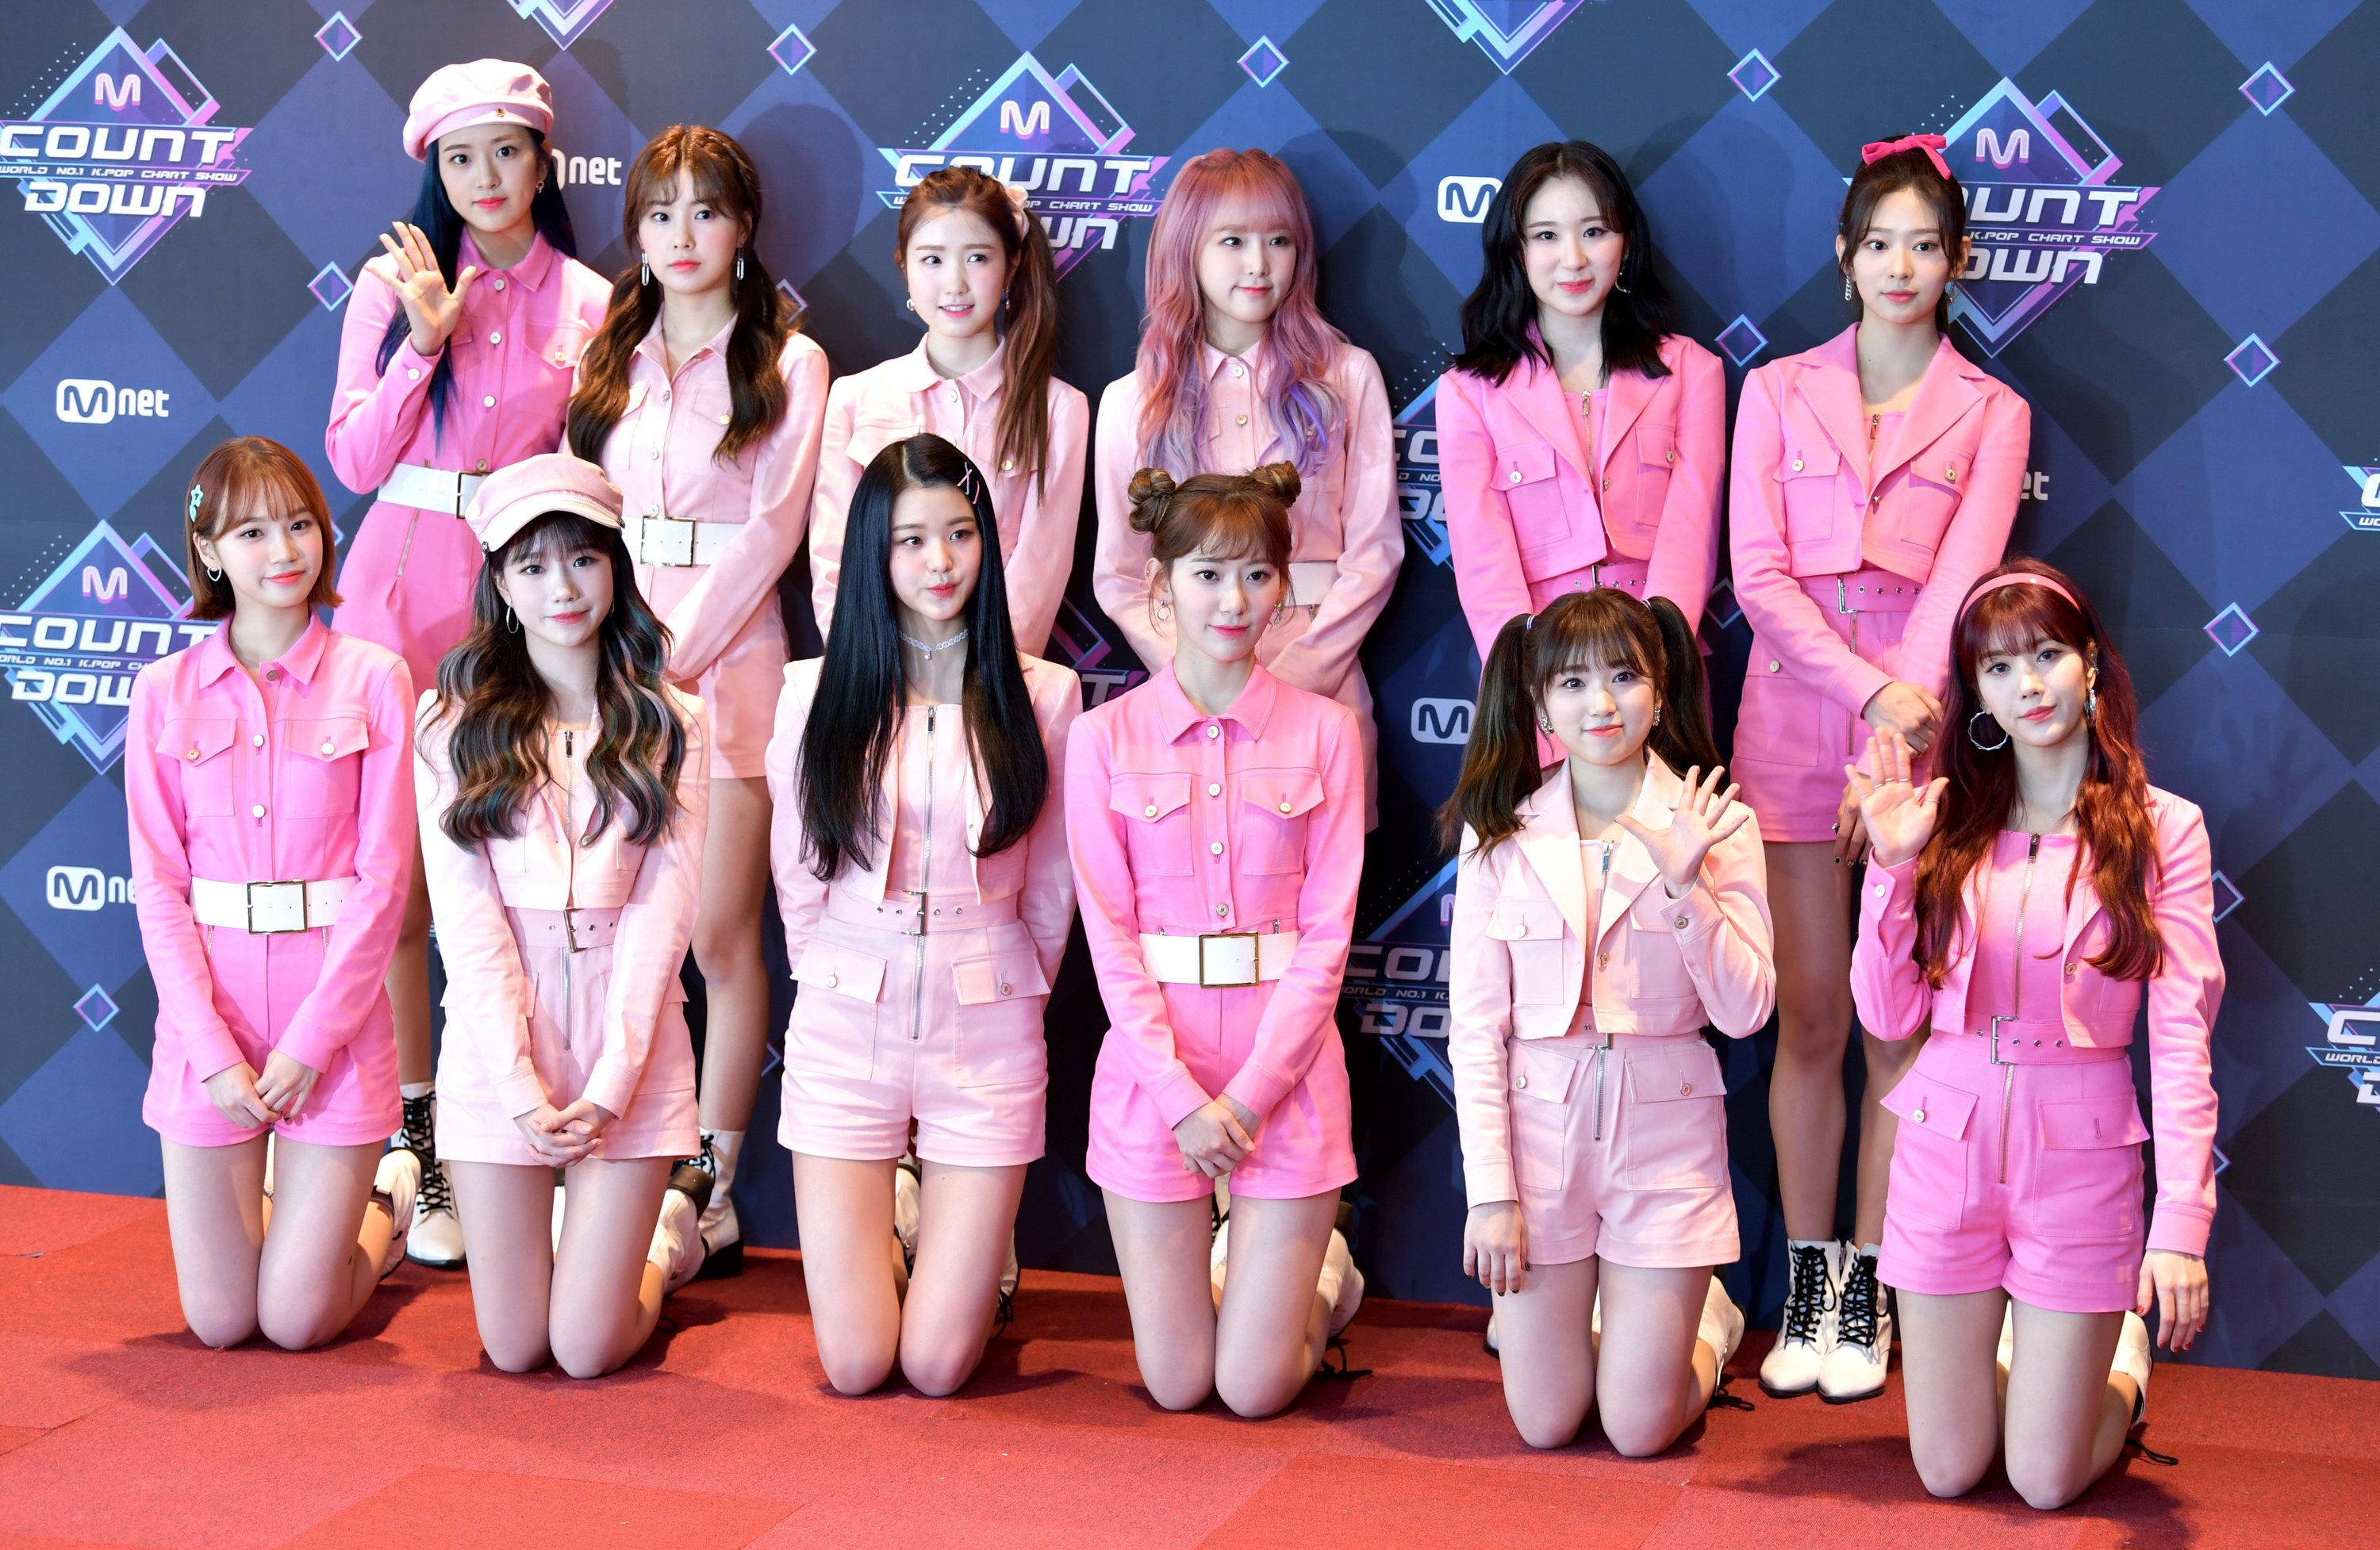 Iz*One attends the photocall for Mnet M Countdown at CJ E&M Center on February 20, 2020 in Seoul, South Korea. (Photo by THE FACT/Imazins via Getty Images)